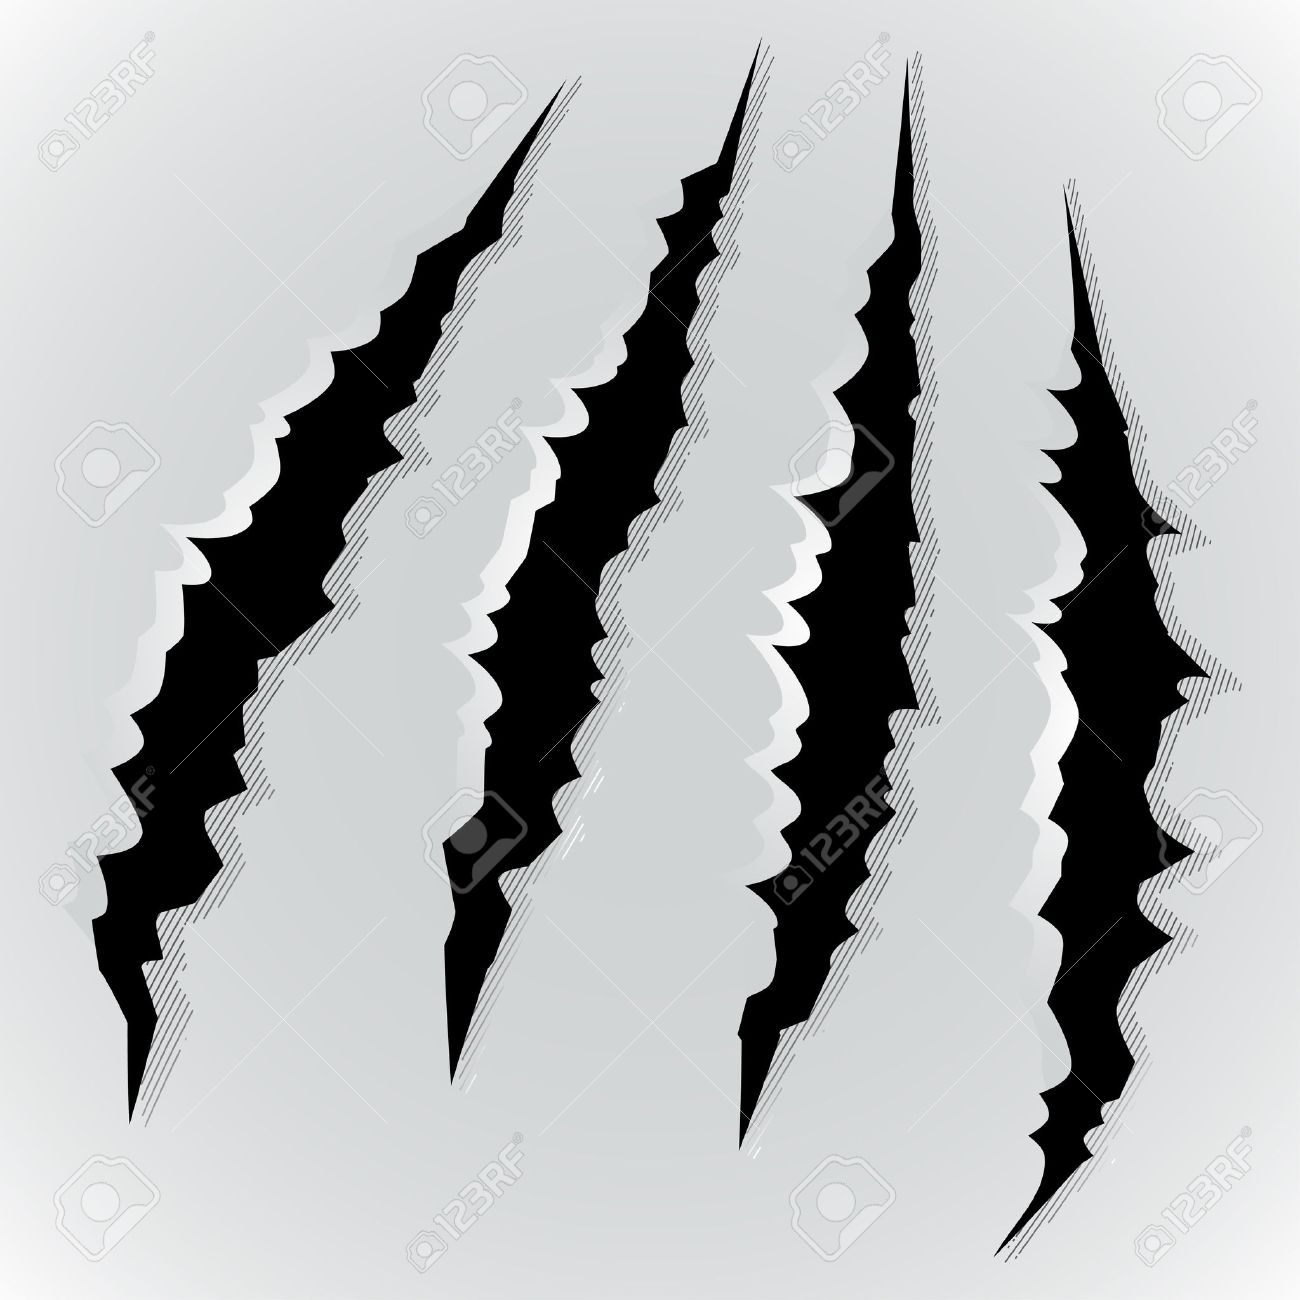 hight resolution of vector vector illustration of monster claw scratch